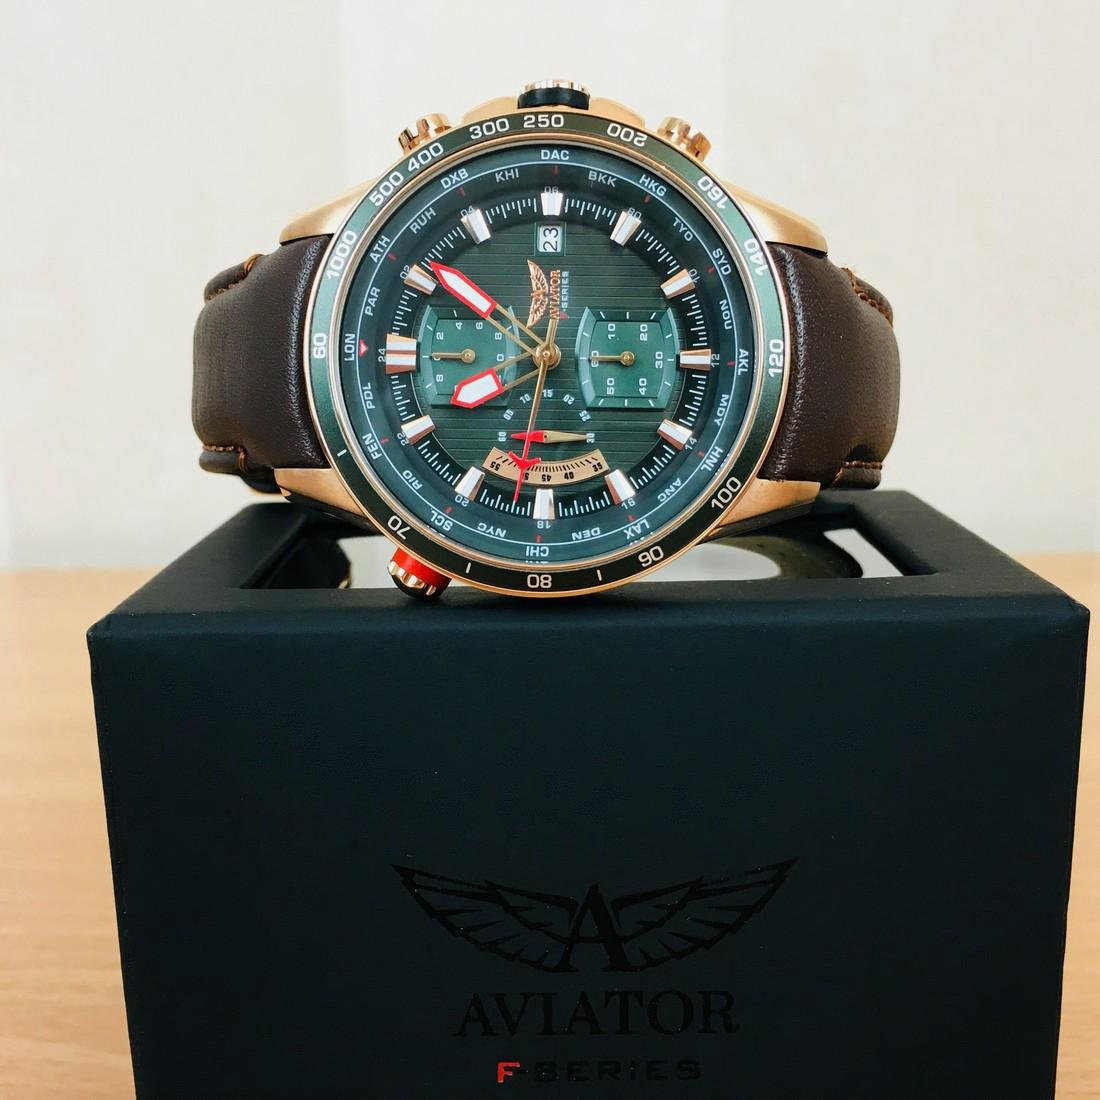 Aviator – Men's World Time Watch - 9